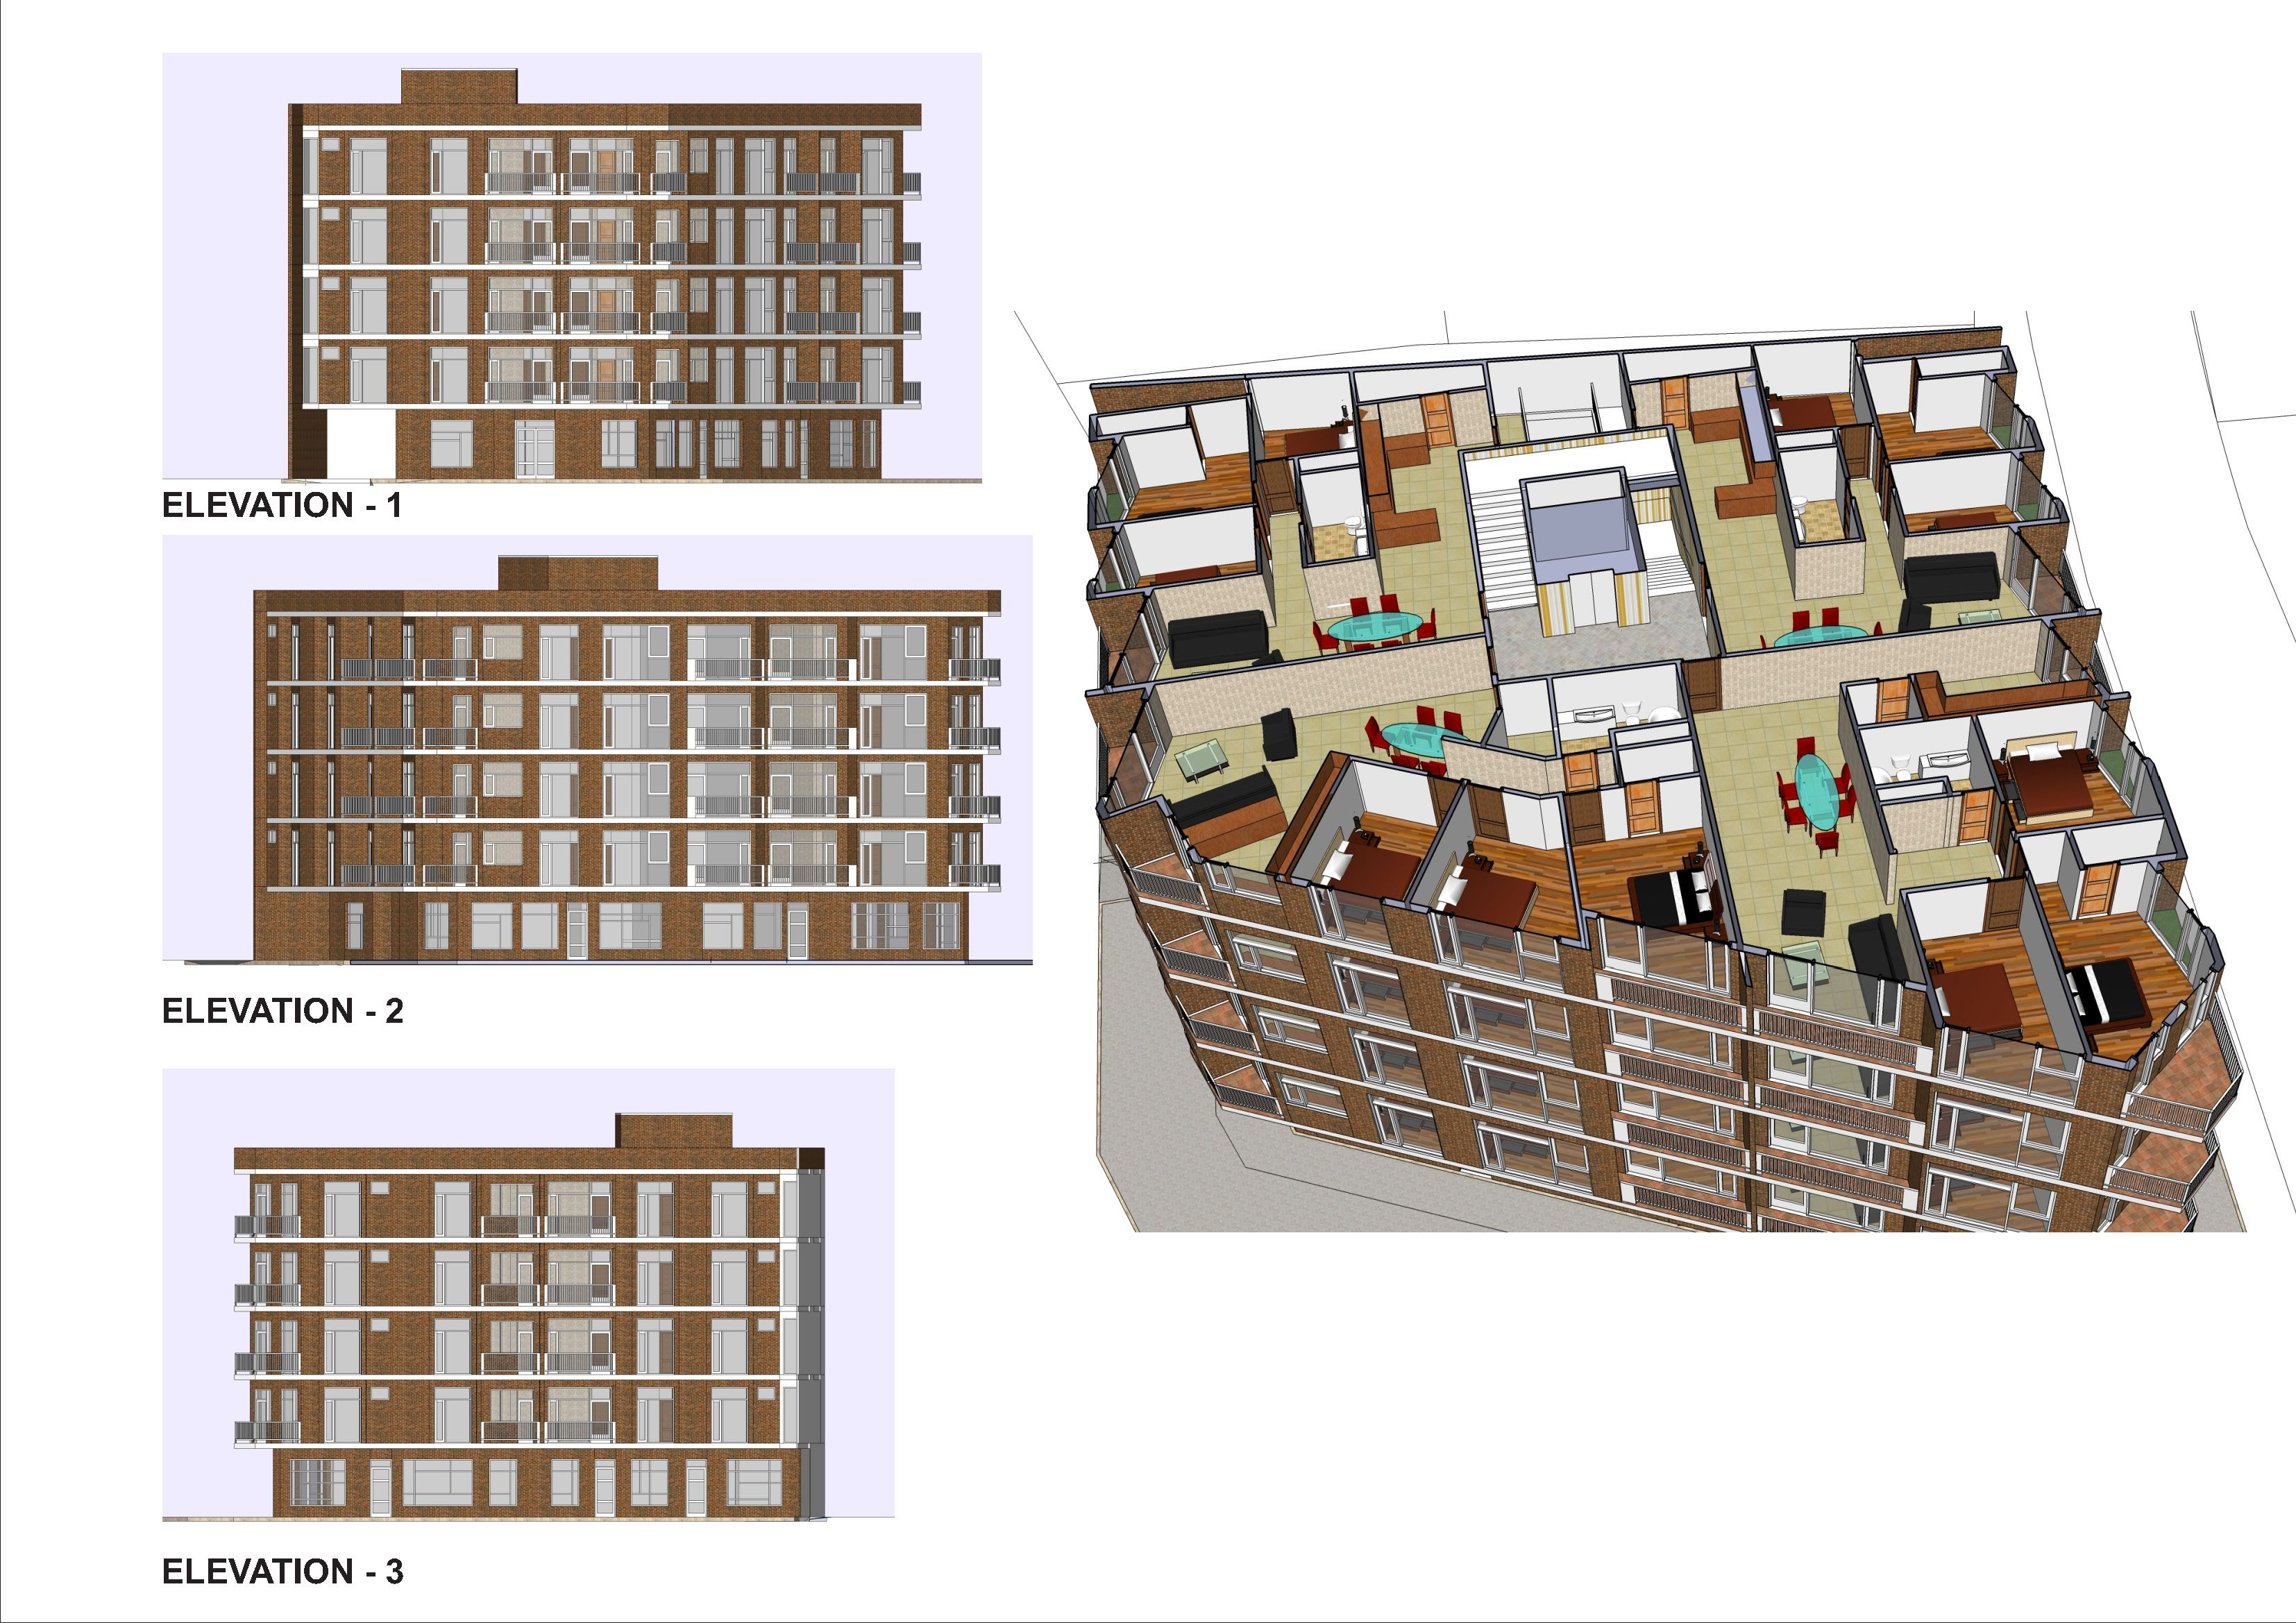 Apartment Building Architectural Plans apartment building plans | location: aksaray, turkey new